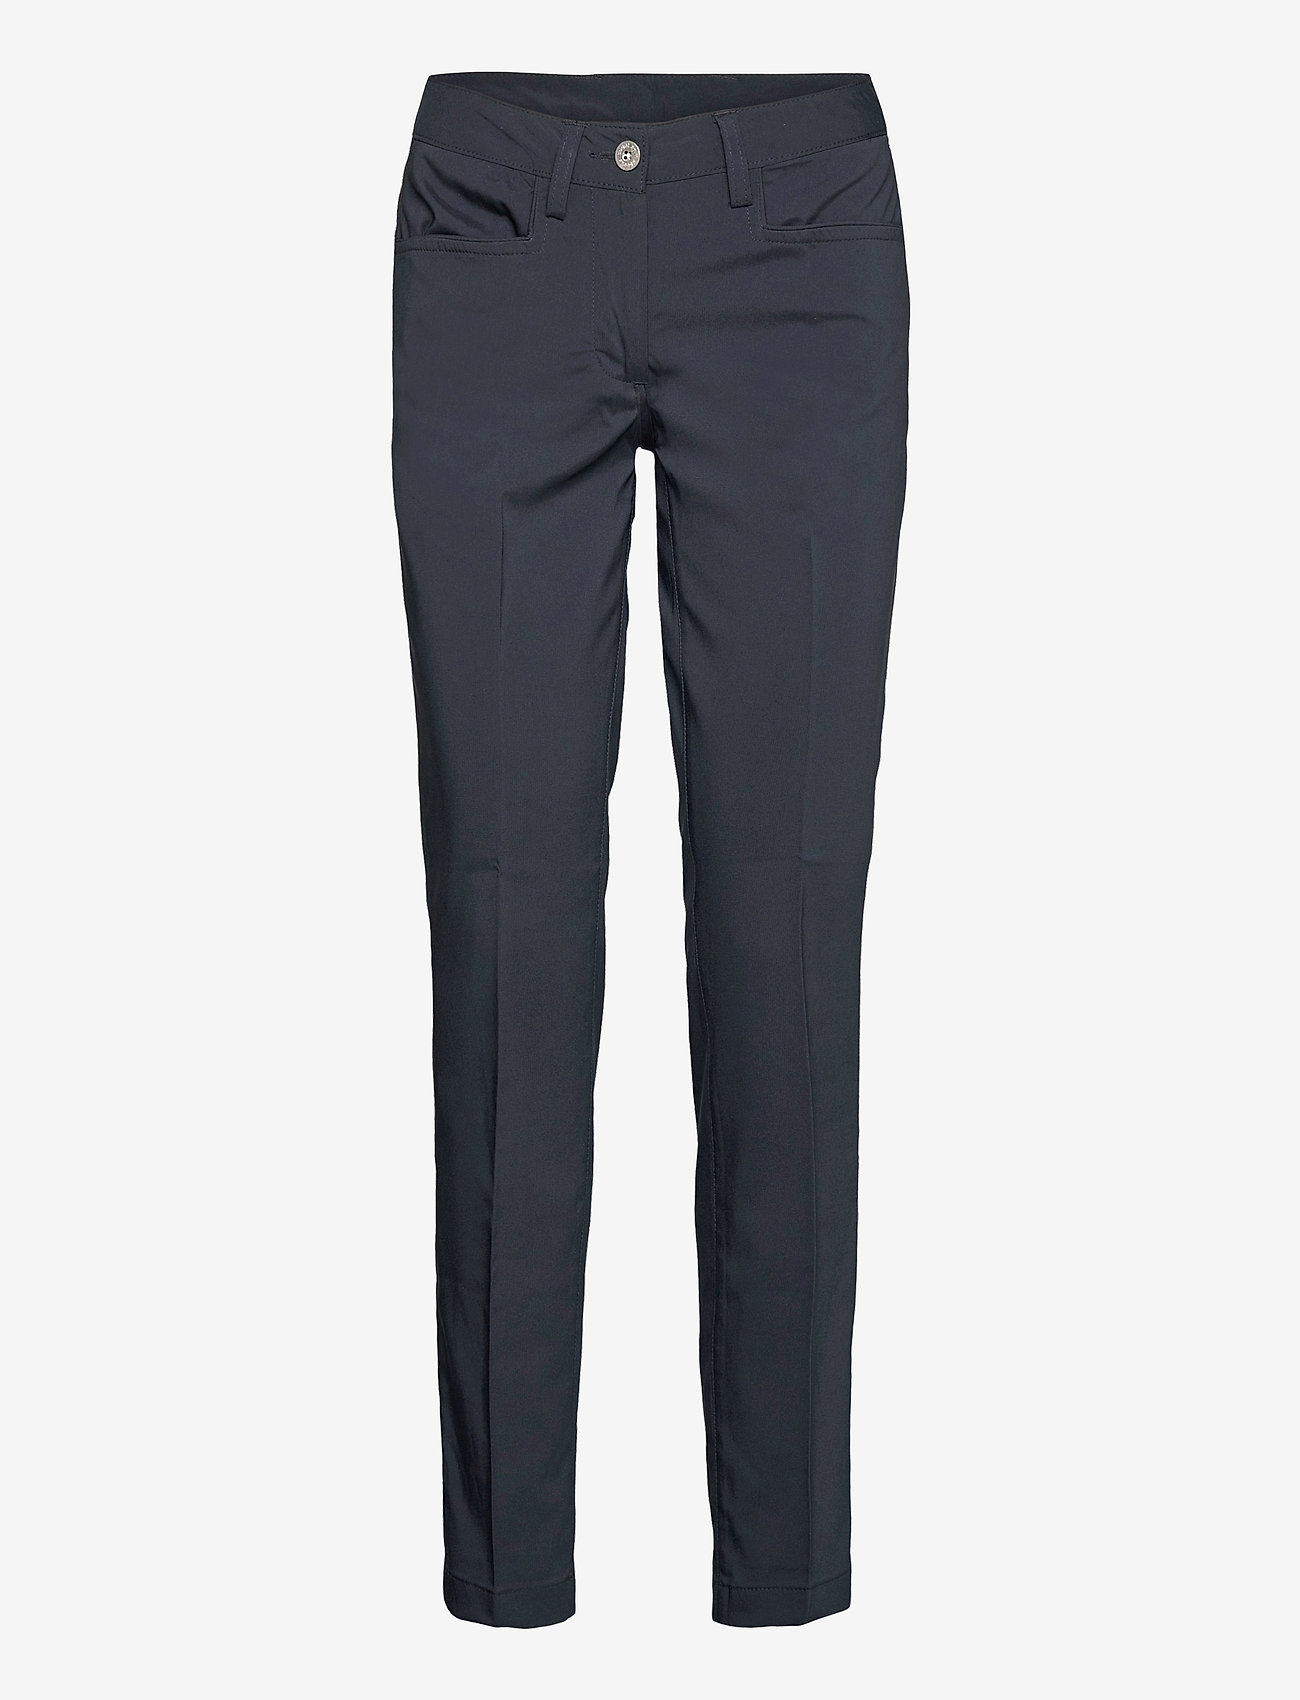 Abacus - Lds Cleek stretch trousers - golfbroeken - navy - 0